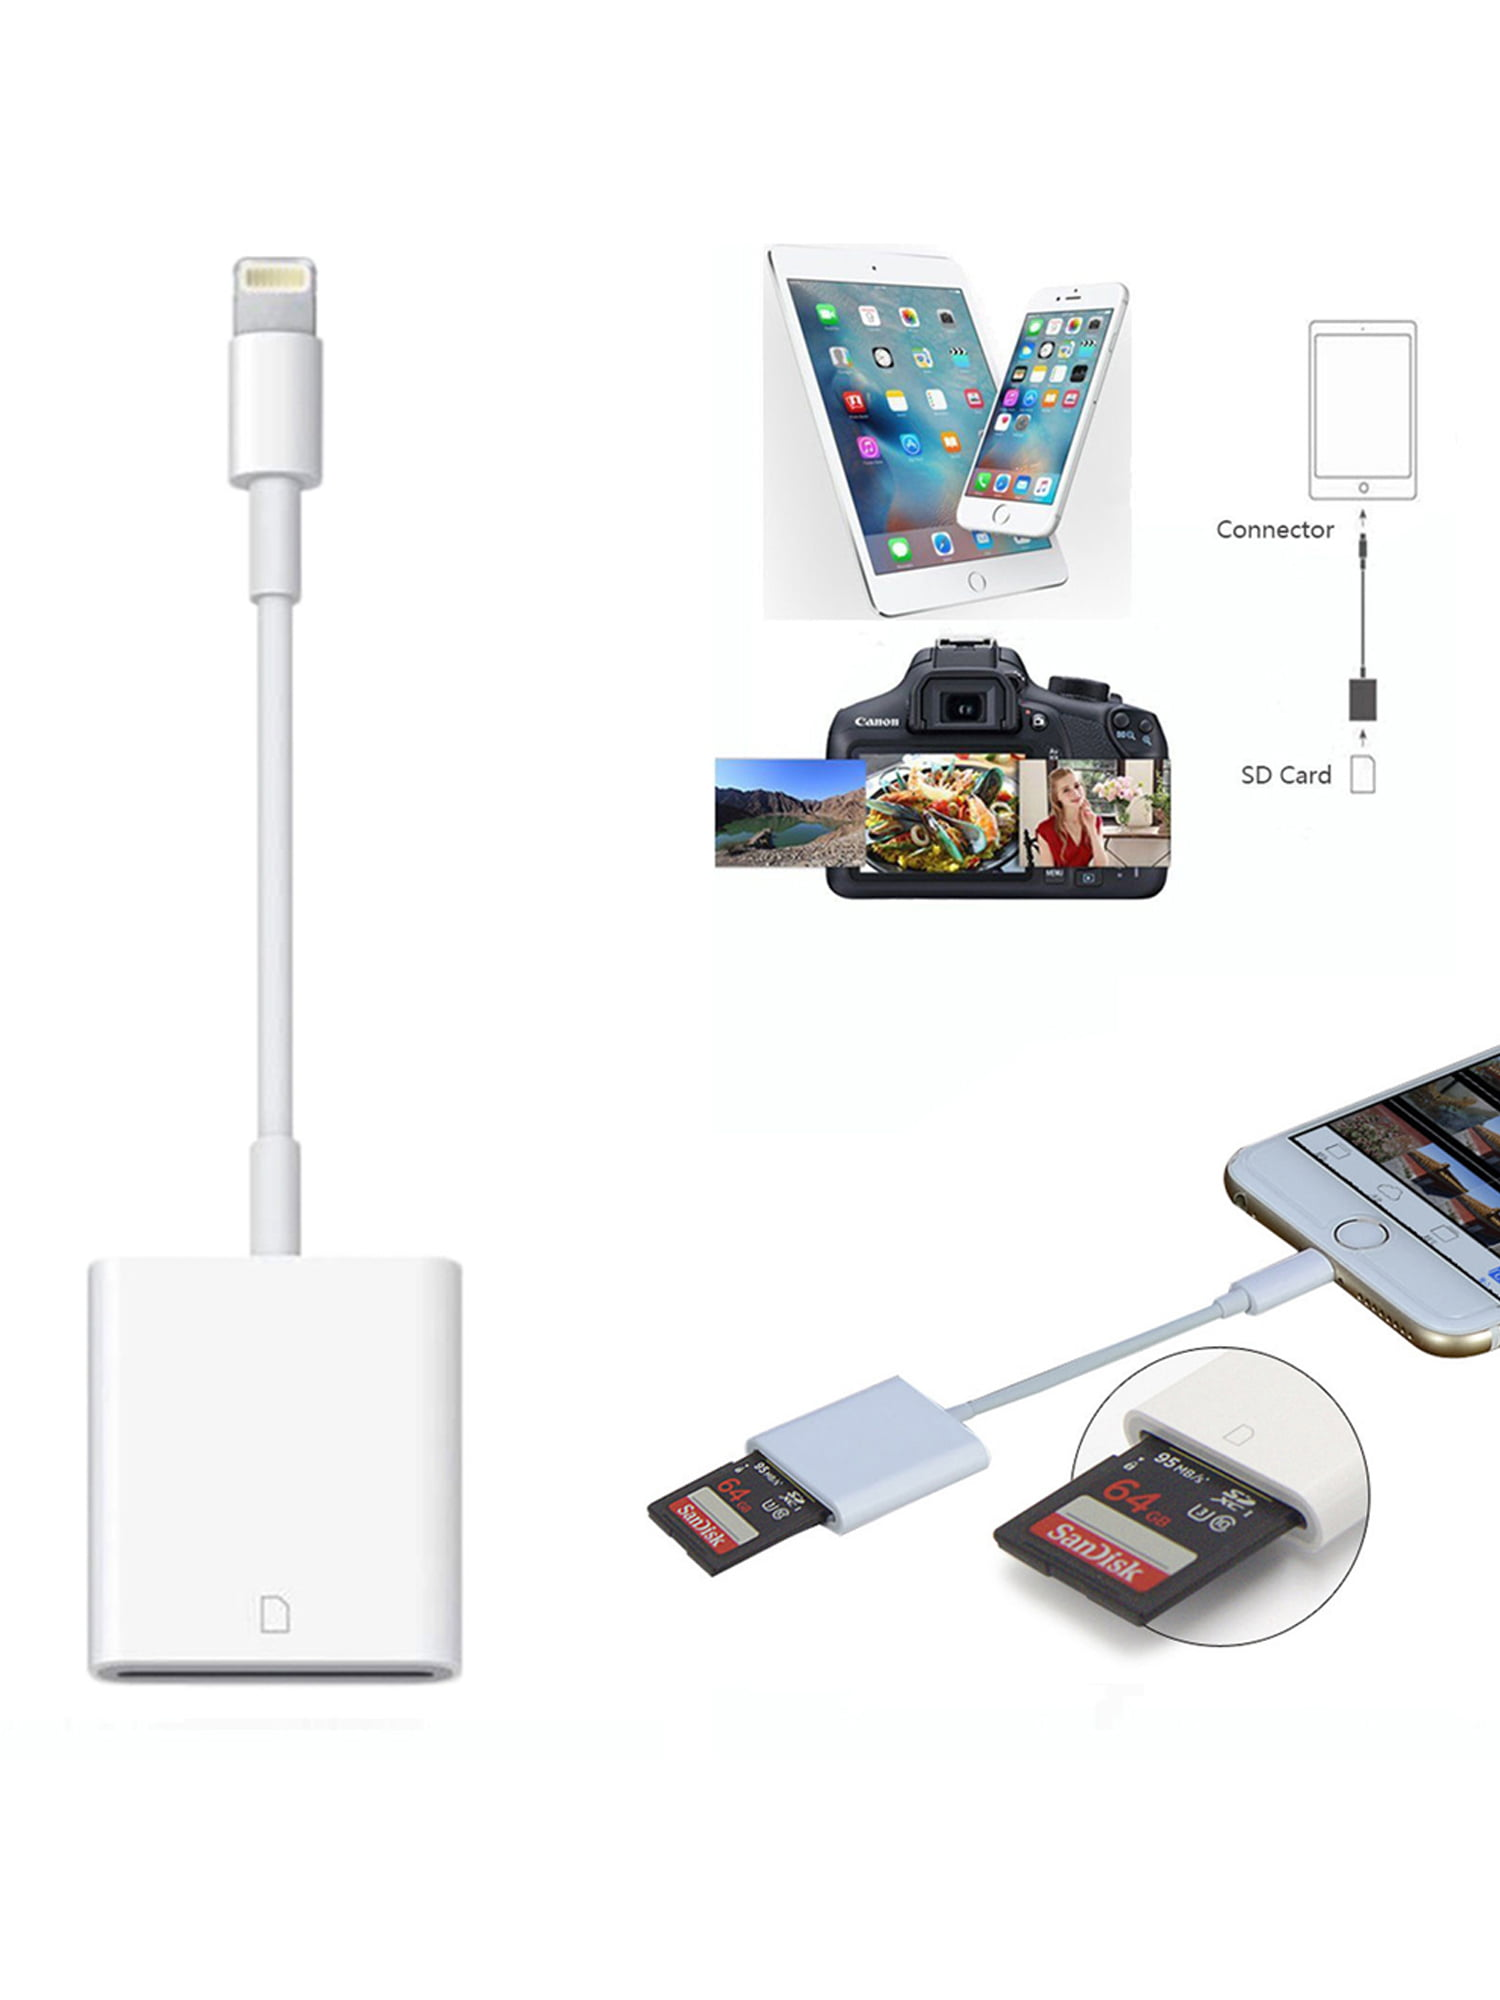 Camera SD Card Reader Adapter Cable for iPhone 6S 7Plus Apple iPad Pro Air New